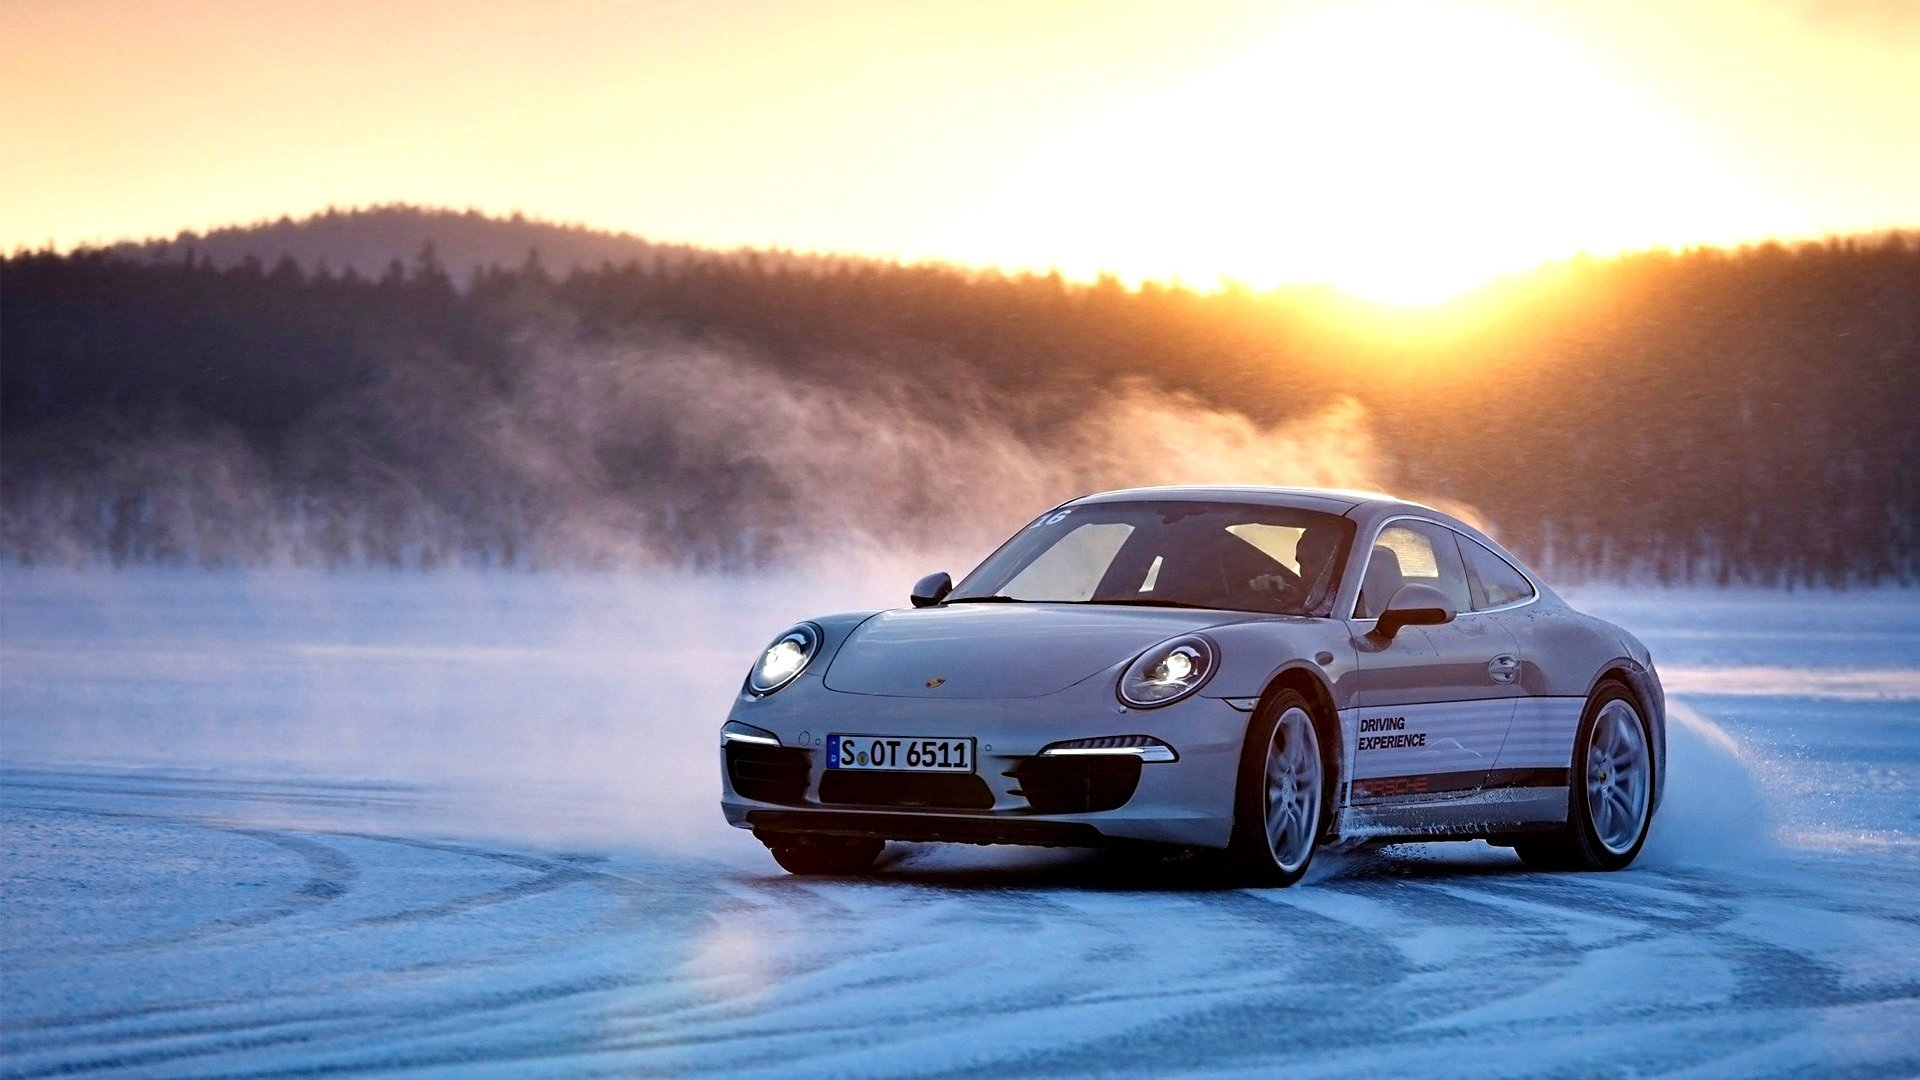 porsche 911 turbo full hd wallpaper and background image | 1920x1080